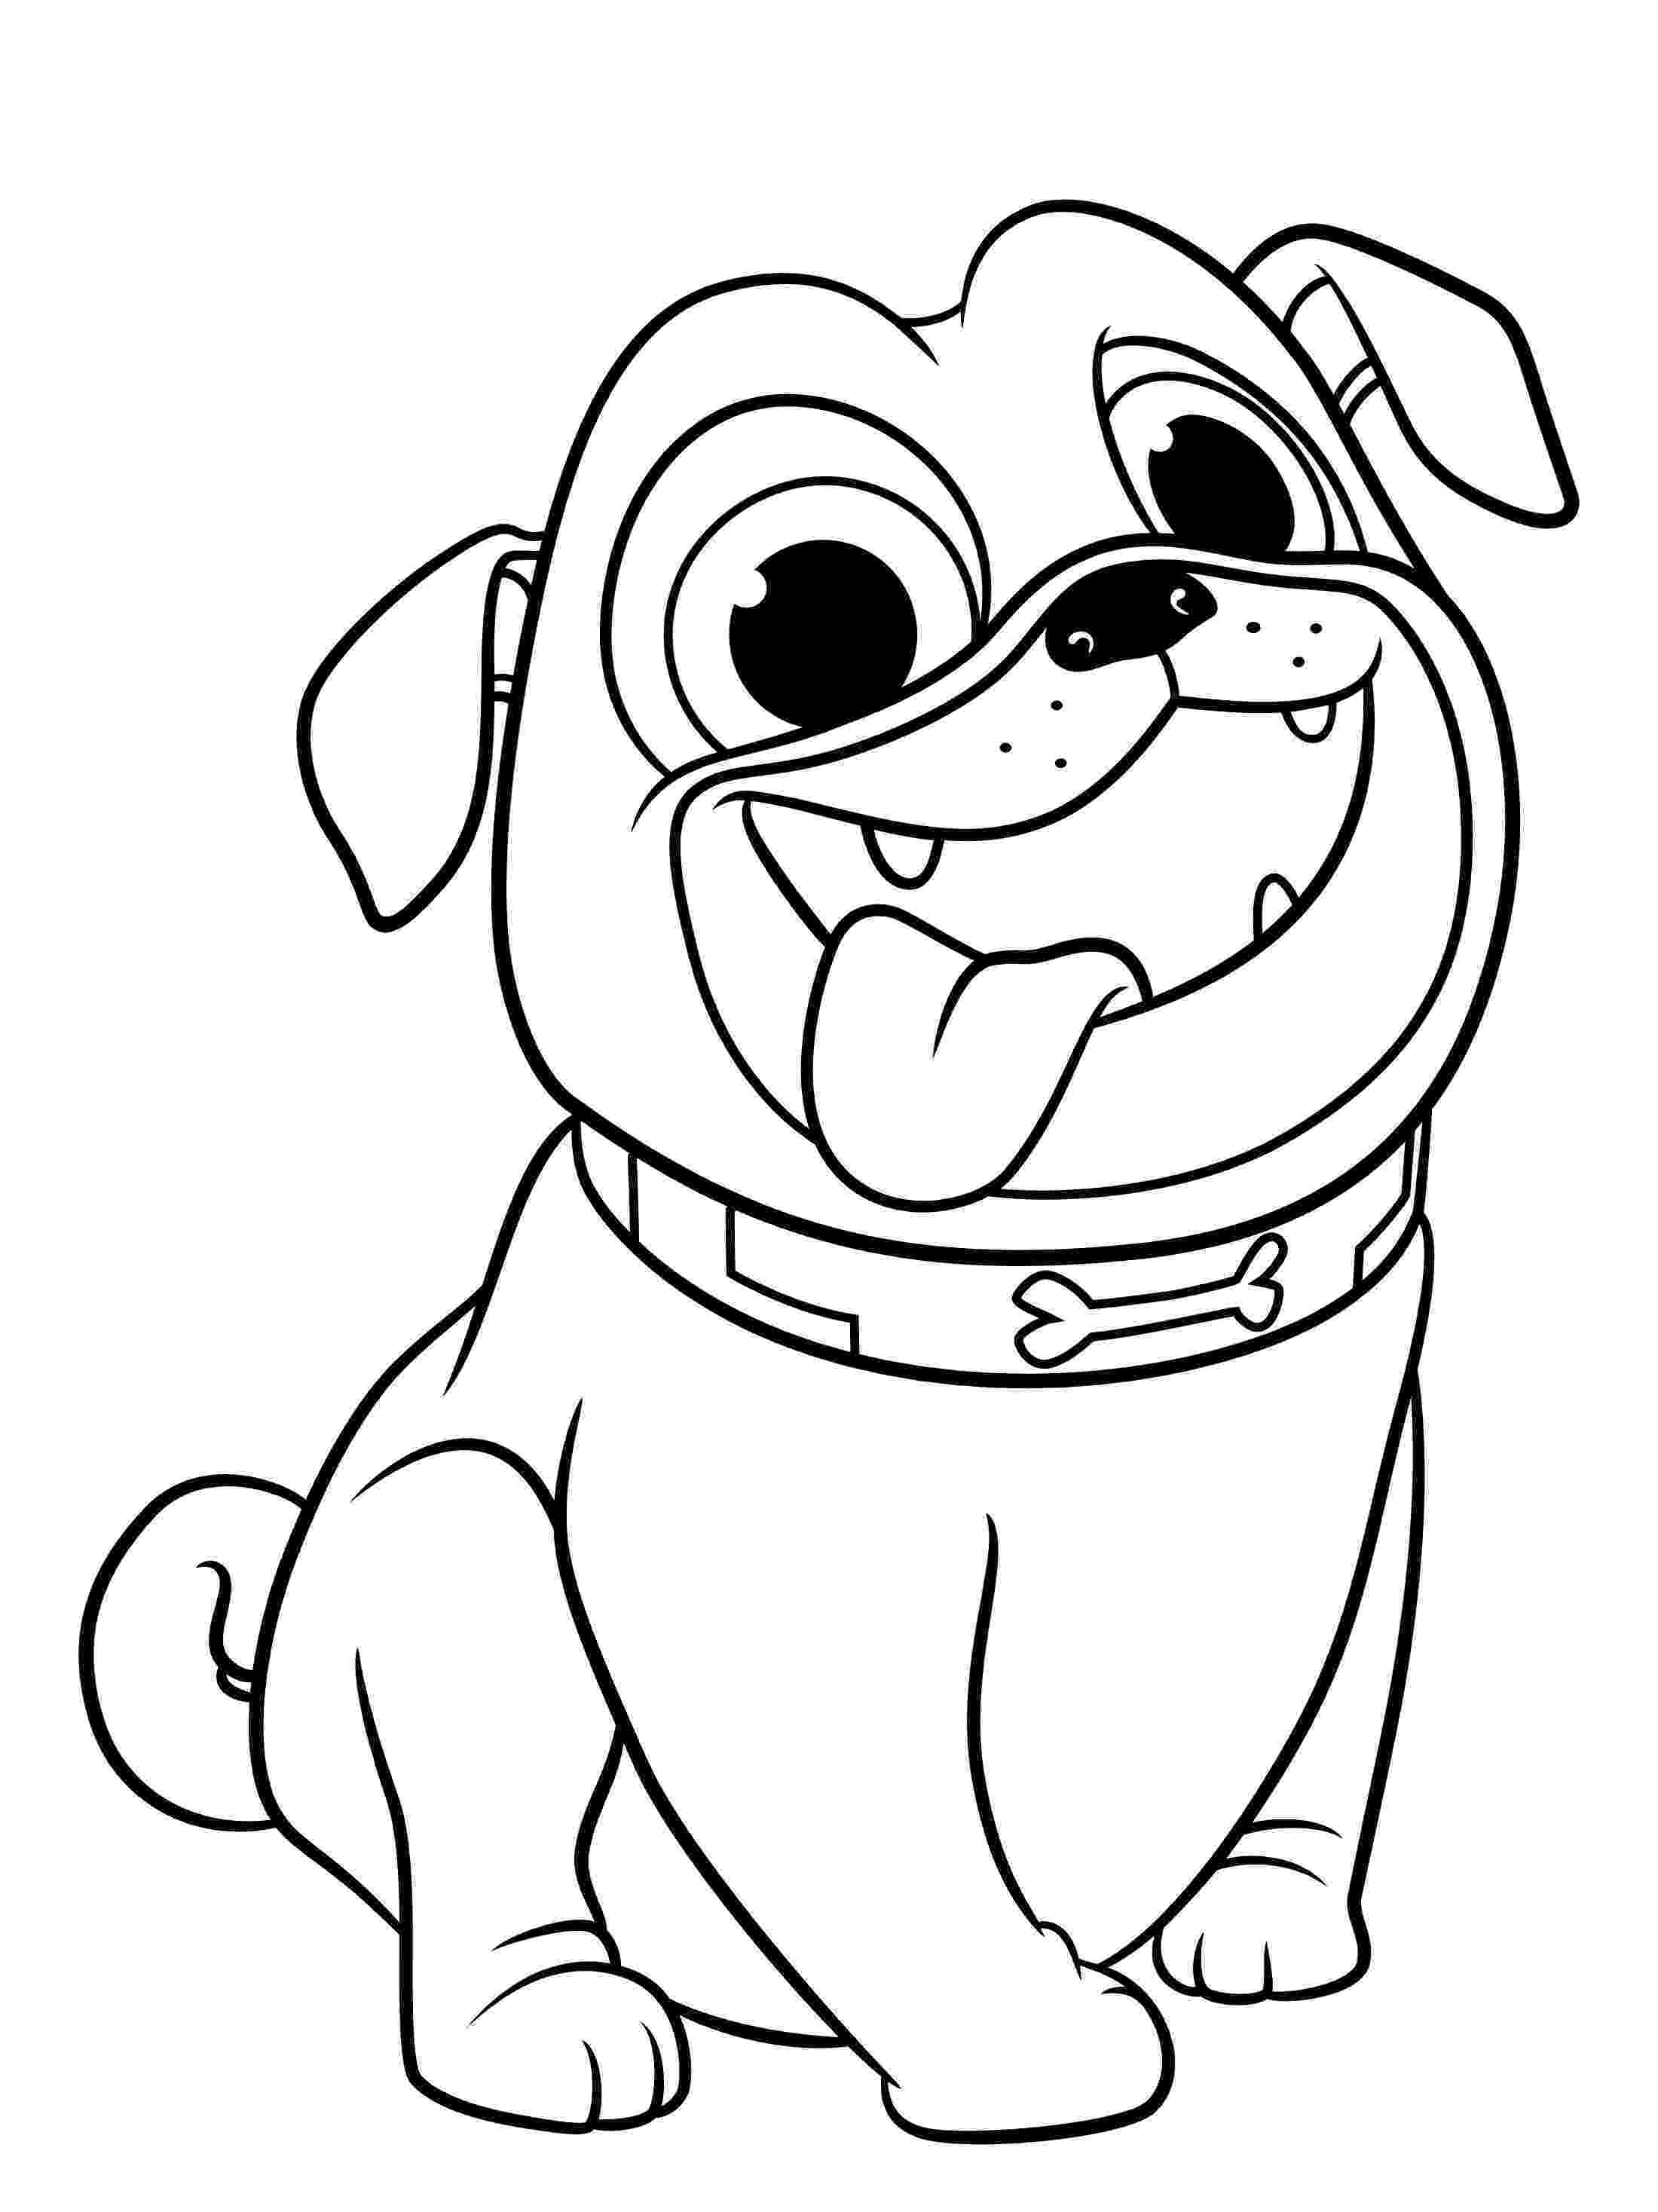 coloring pages of puppies puppy dog pals coloring pages to download and print for free of pages coloring puppies